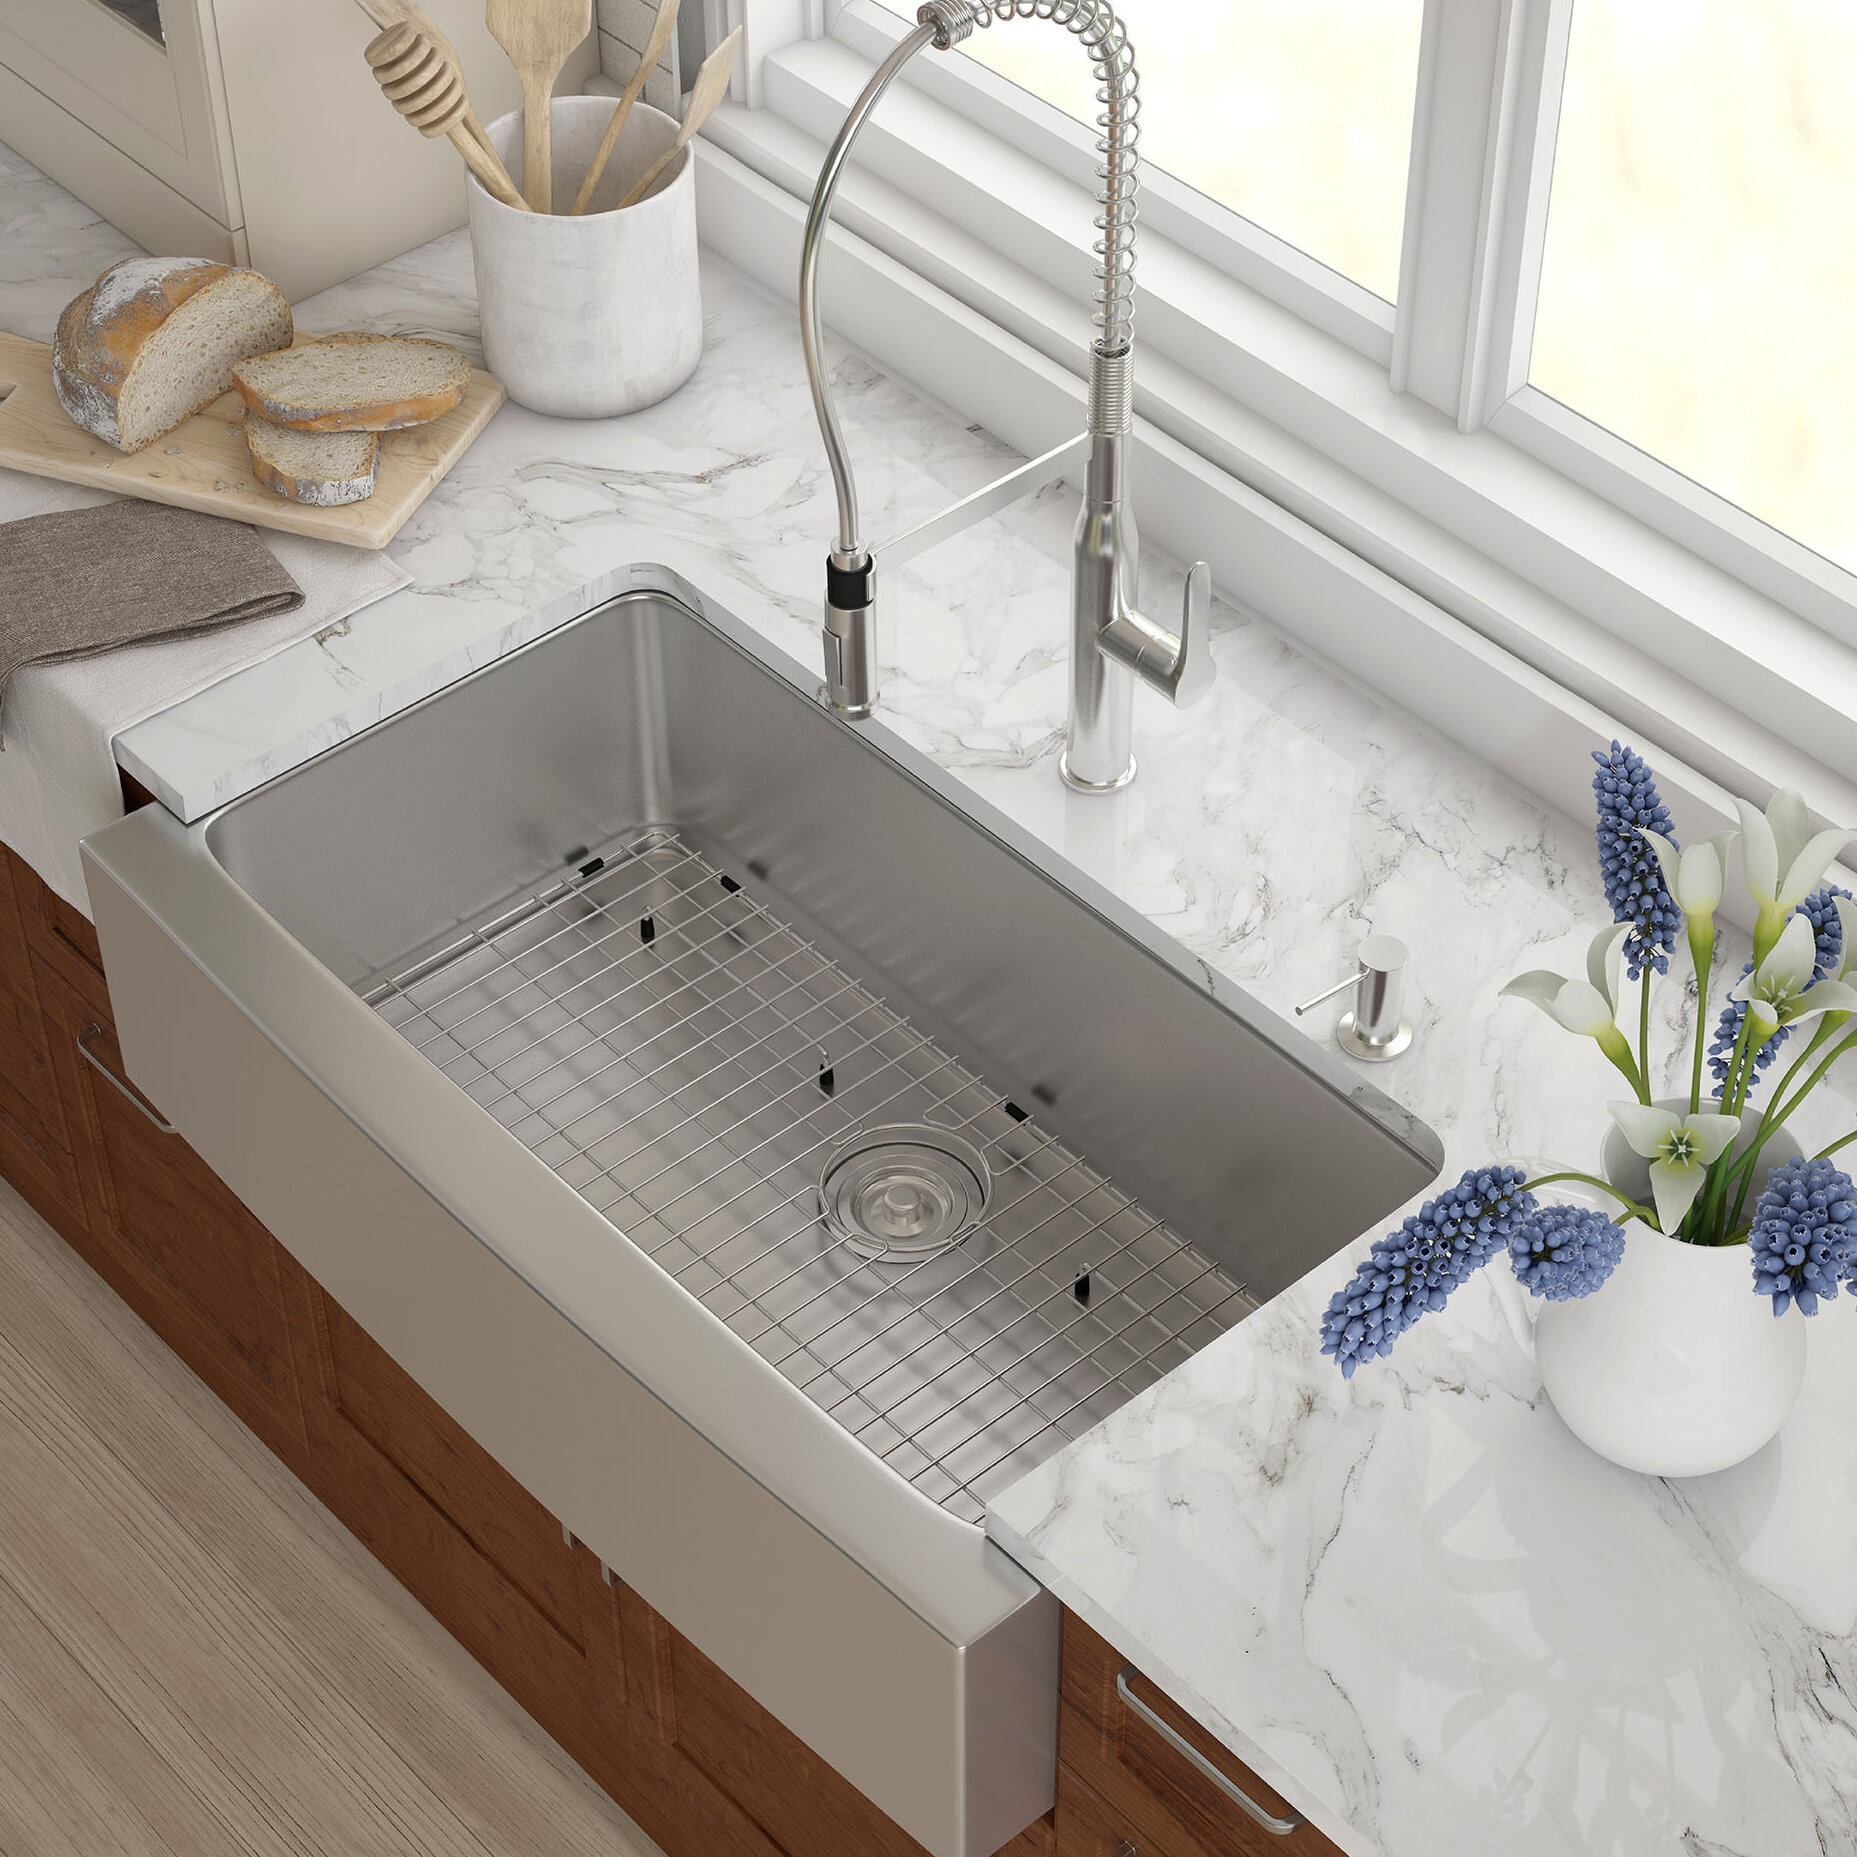 "36"" x 21"" Farmhouse Kitchen Sink with Drain Assembly & Reviews"